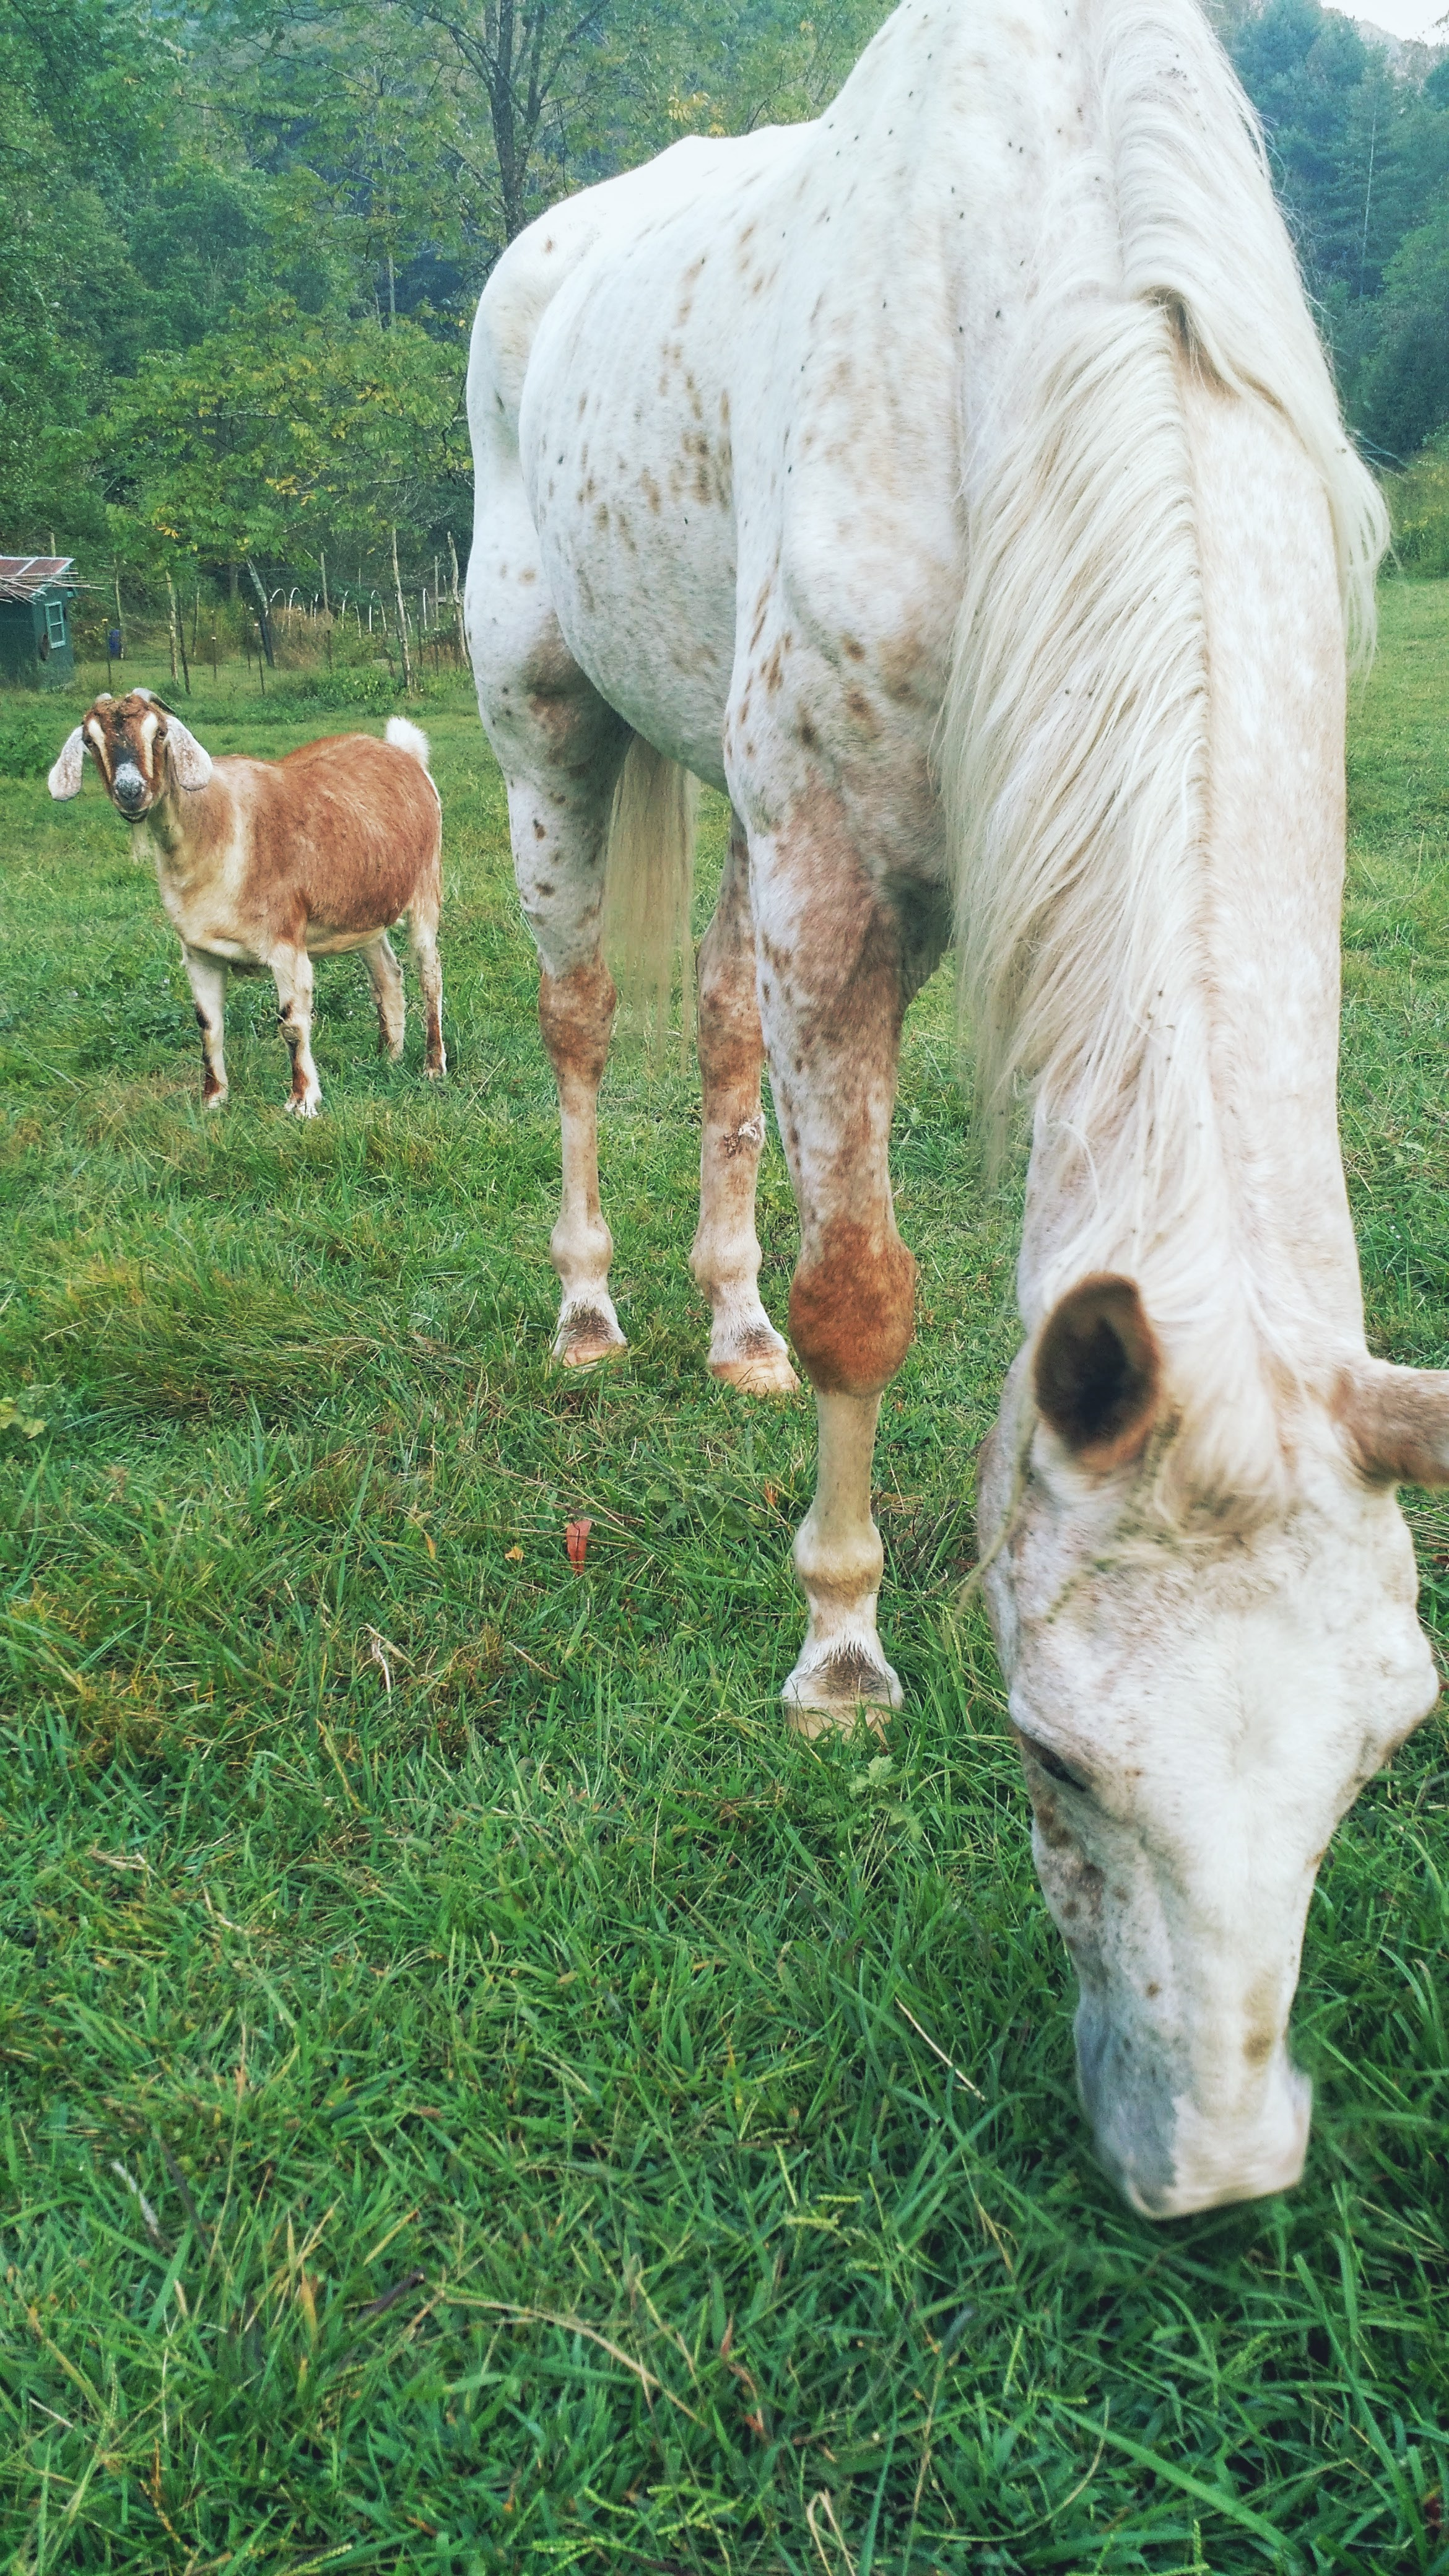 The starving horse and his goat friend.